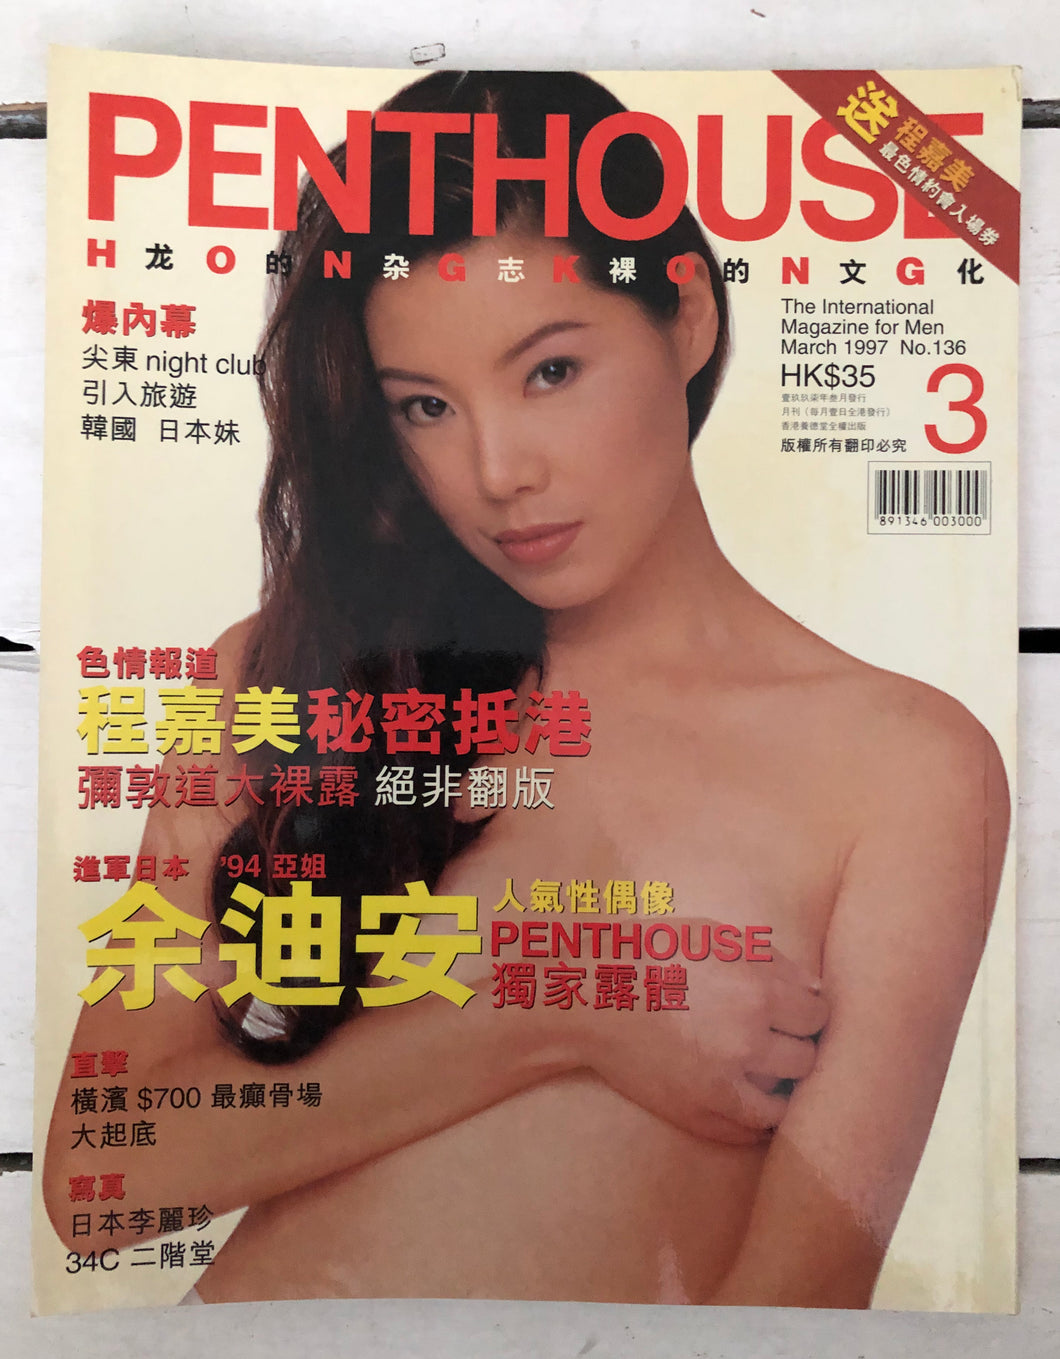 Penthouse Hong Kong March 1997